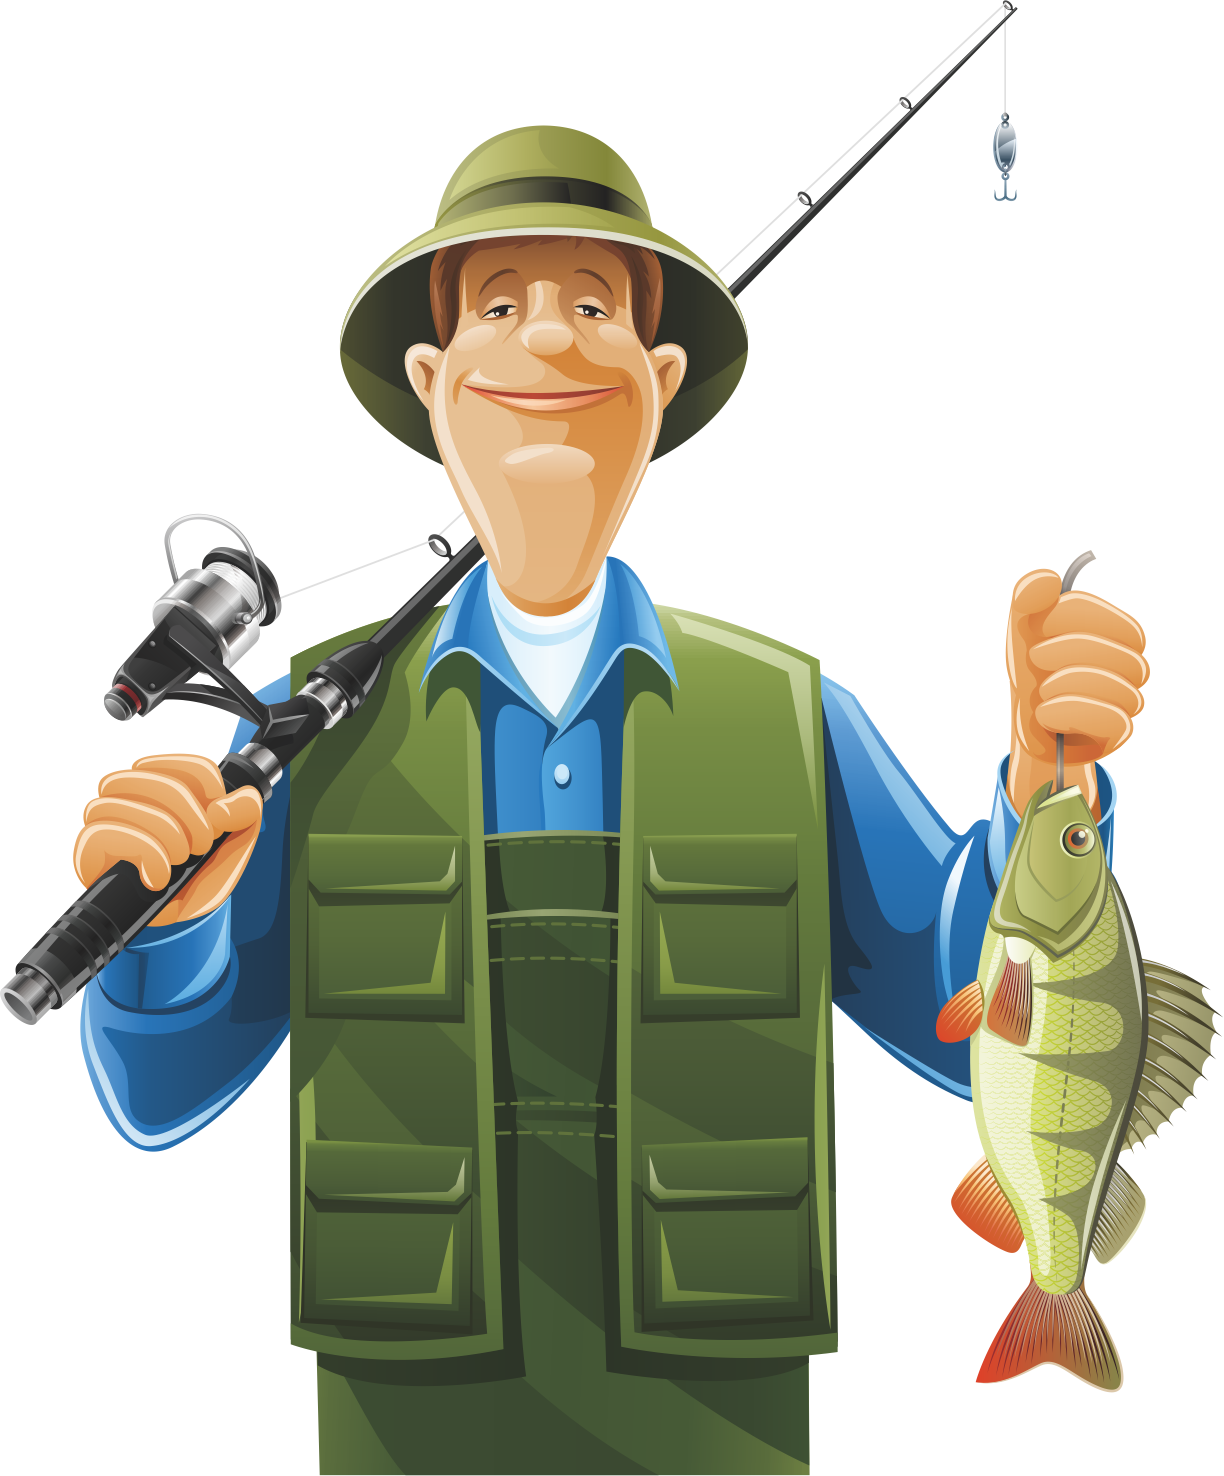 Clipart fish and fishermen png freeuse download Fisherman Fishing rod Clip art - Holding a fishing rod and a fish ... png freeuse download